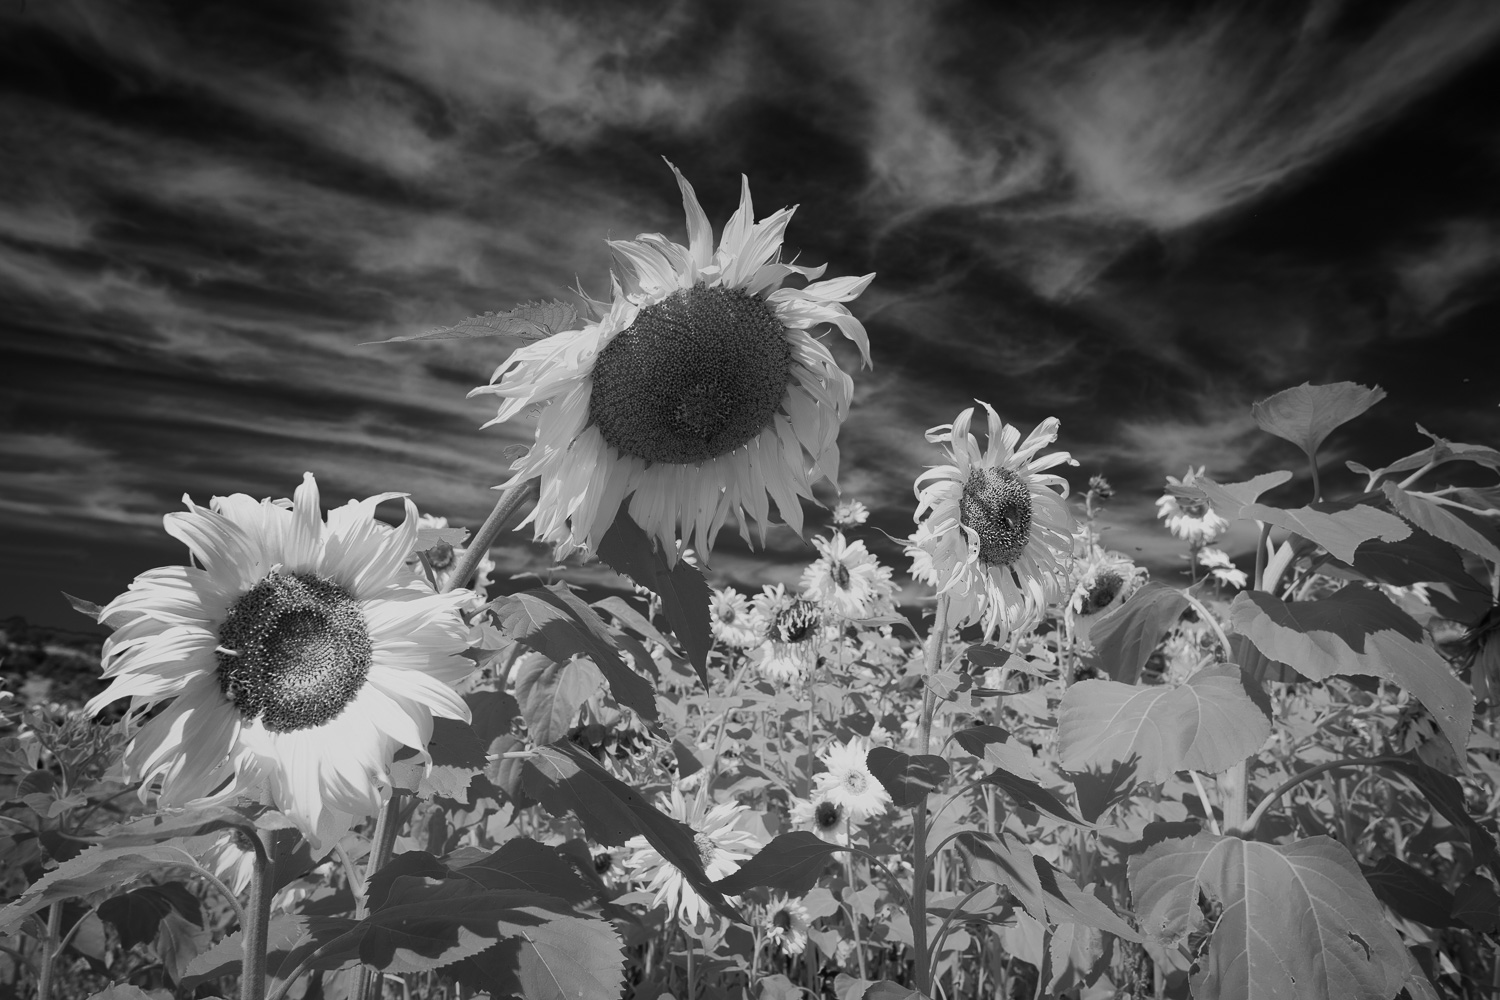 Sunflowers in Infrared